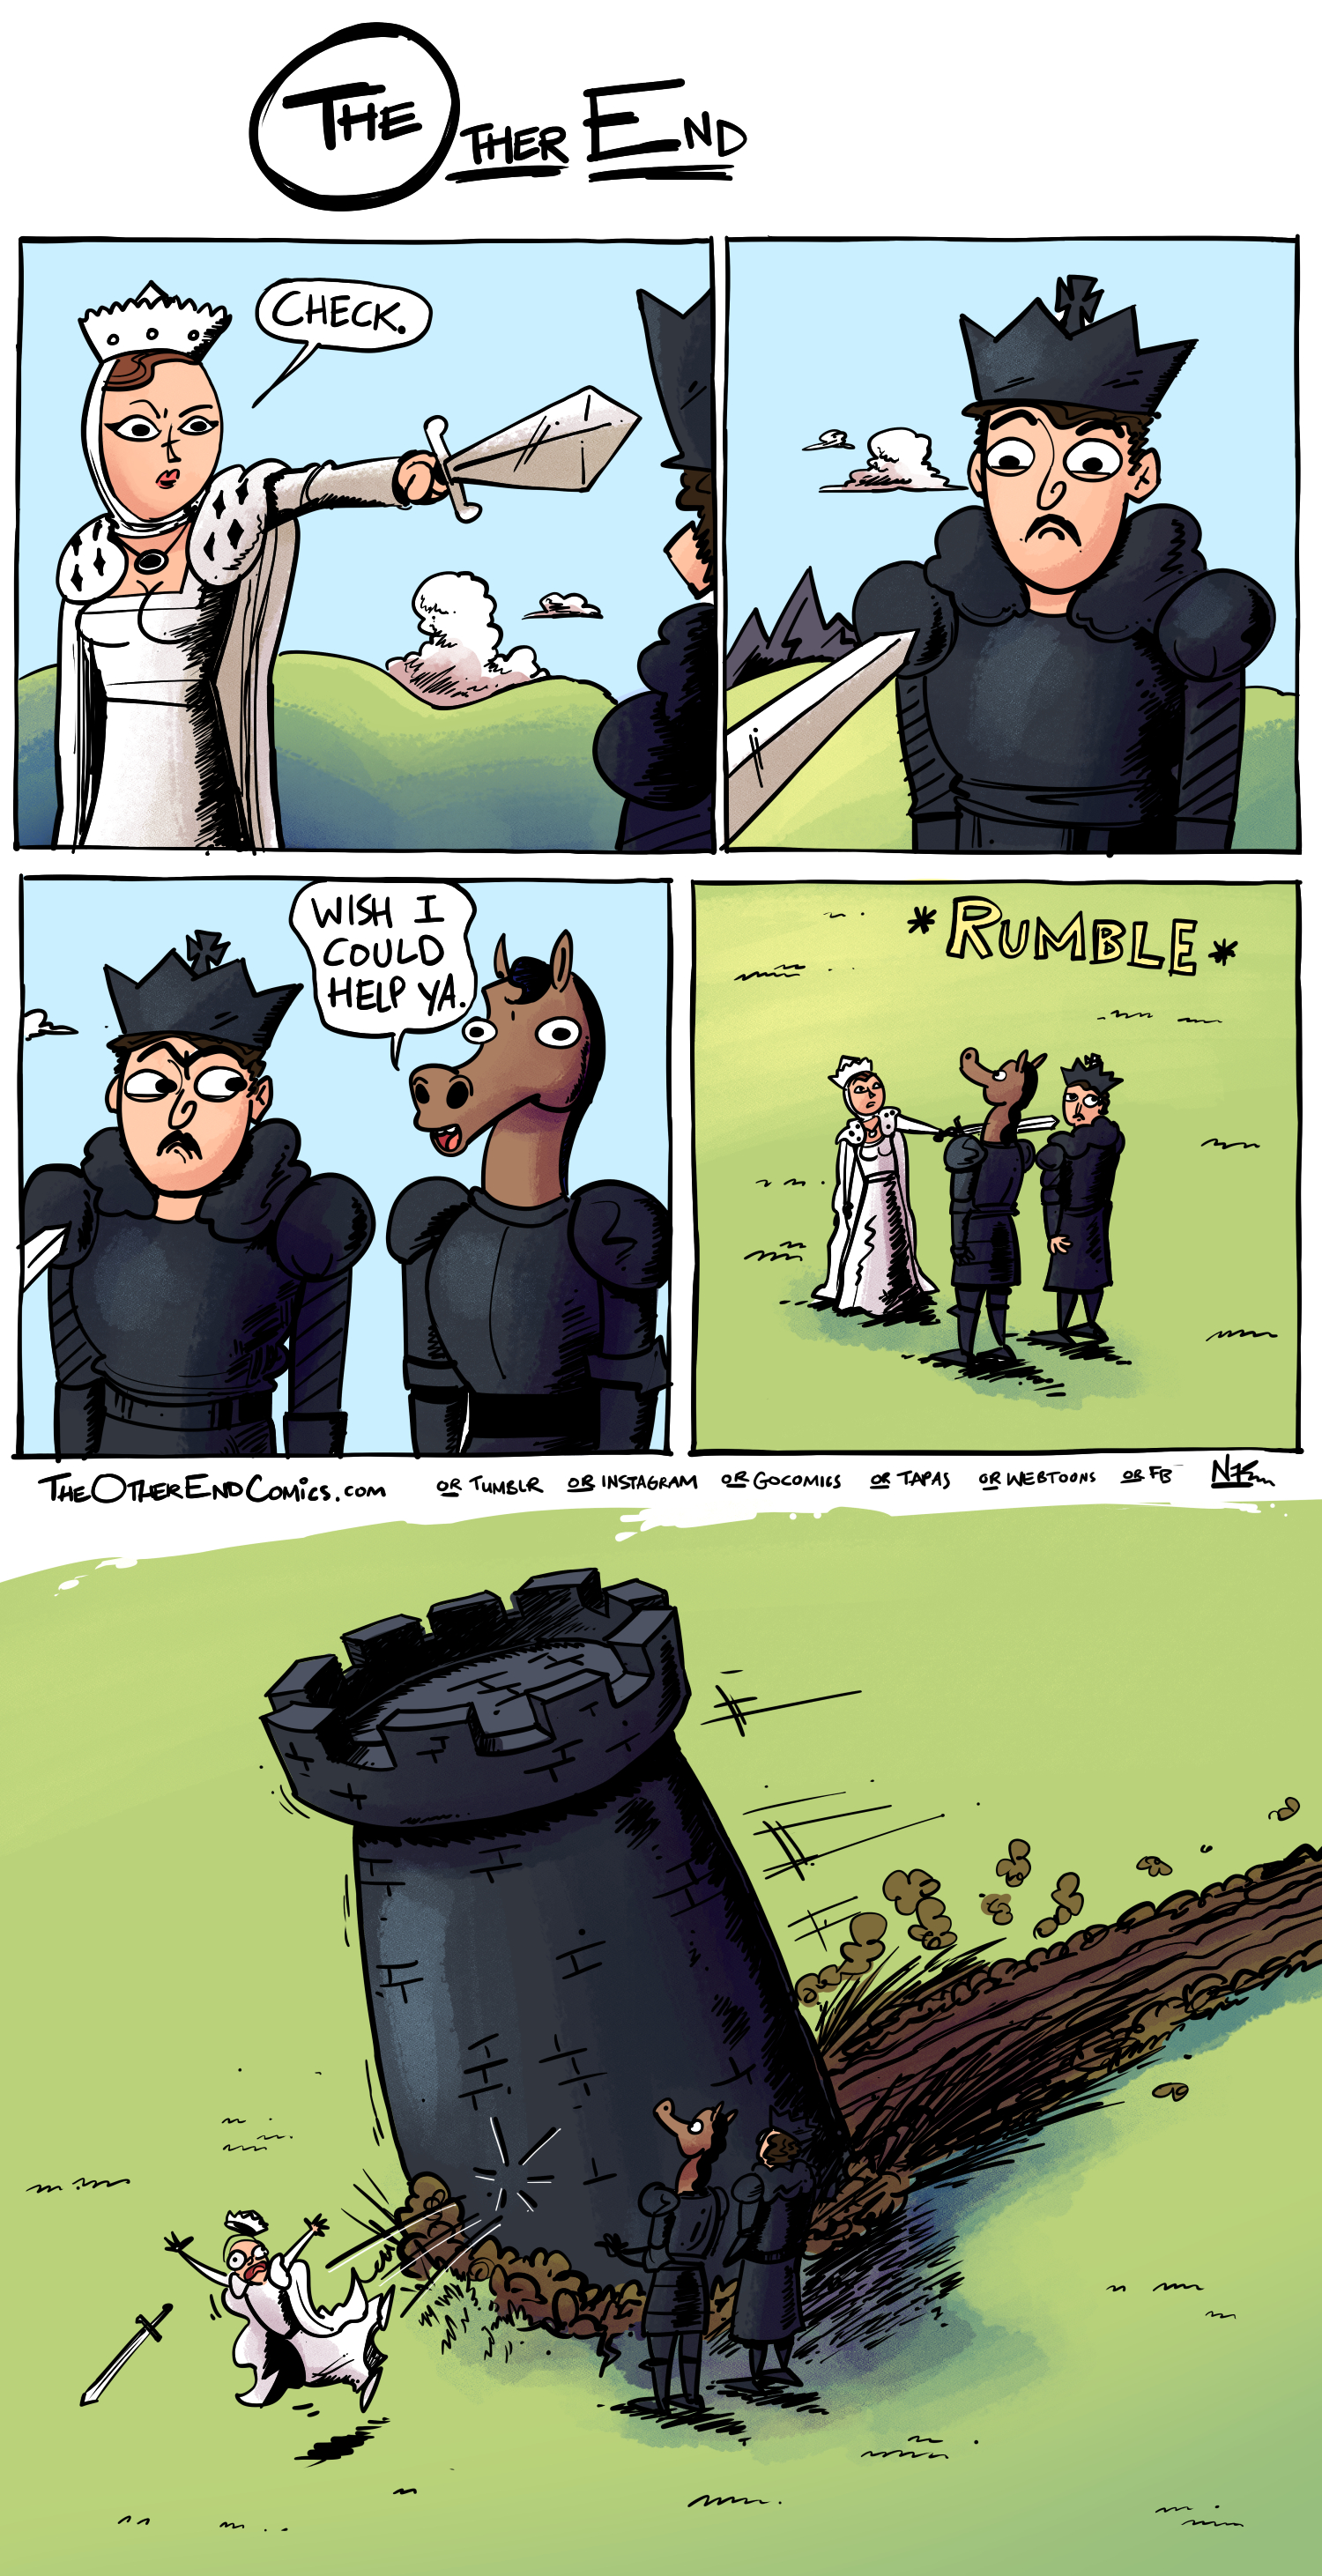 There's not even a checkerboard pattern on the battlefield. This comic is so fake